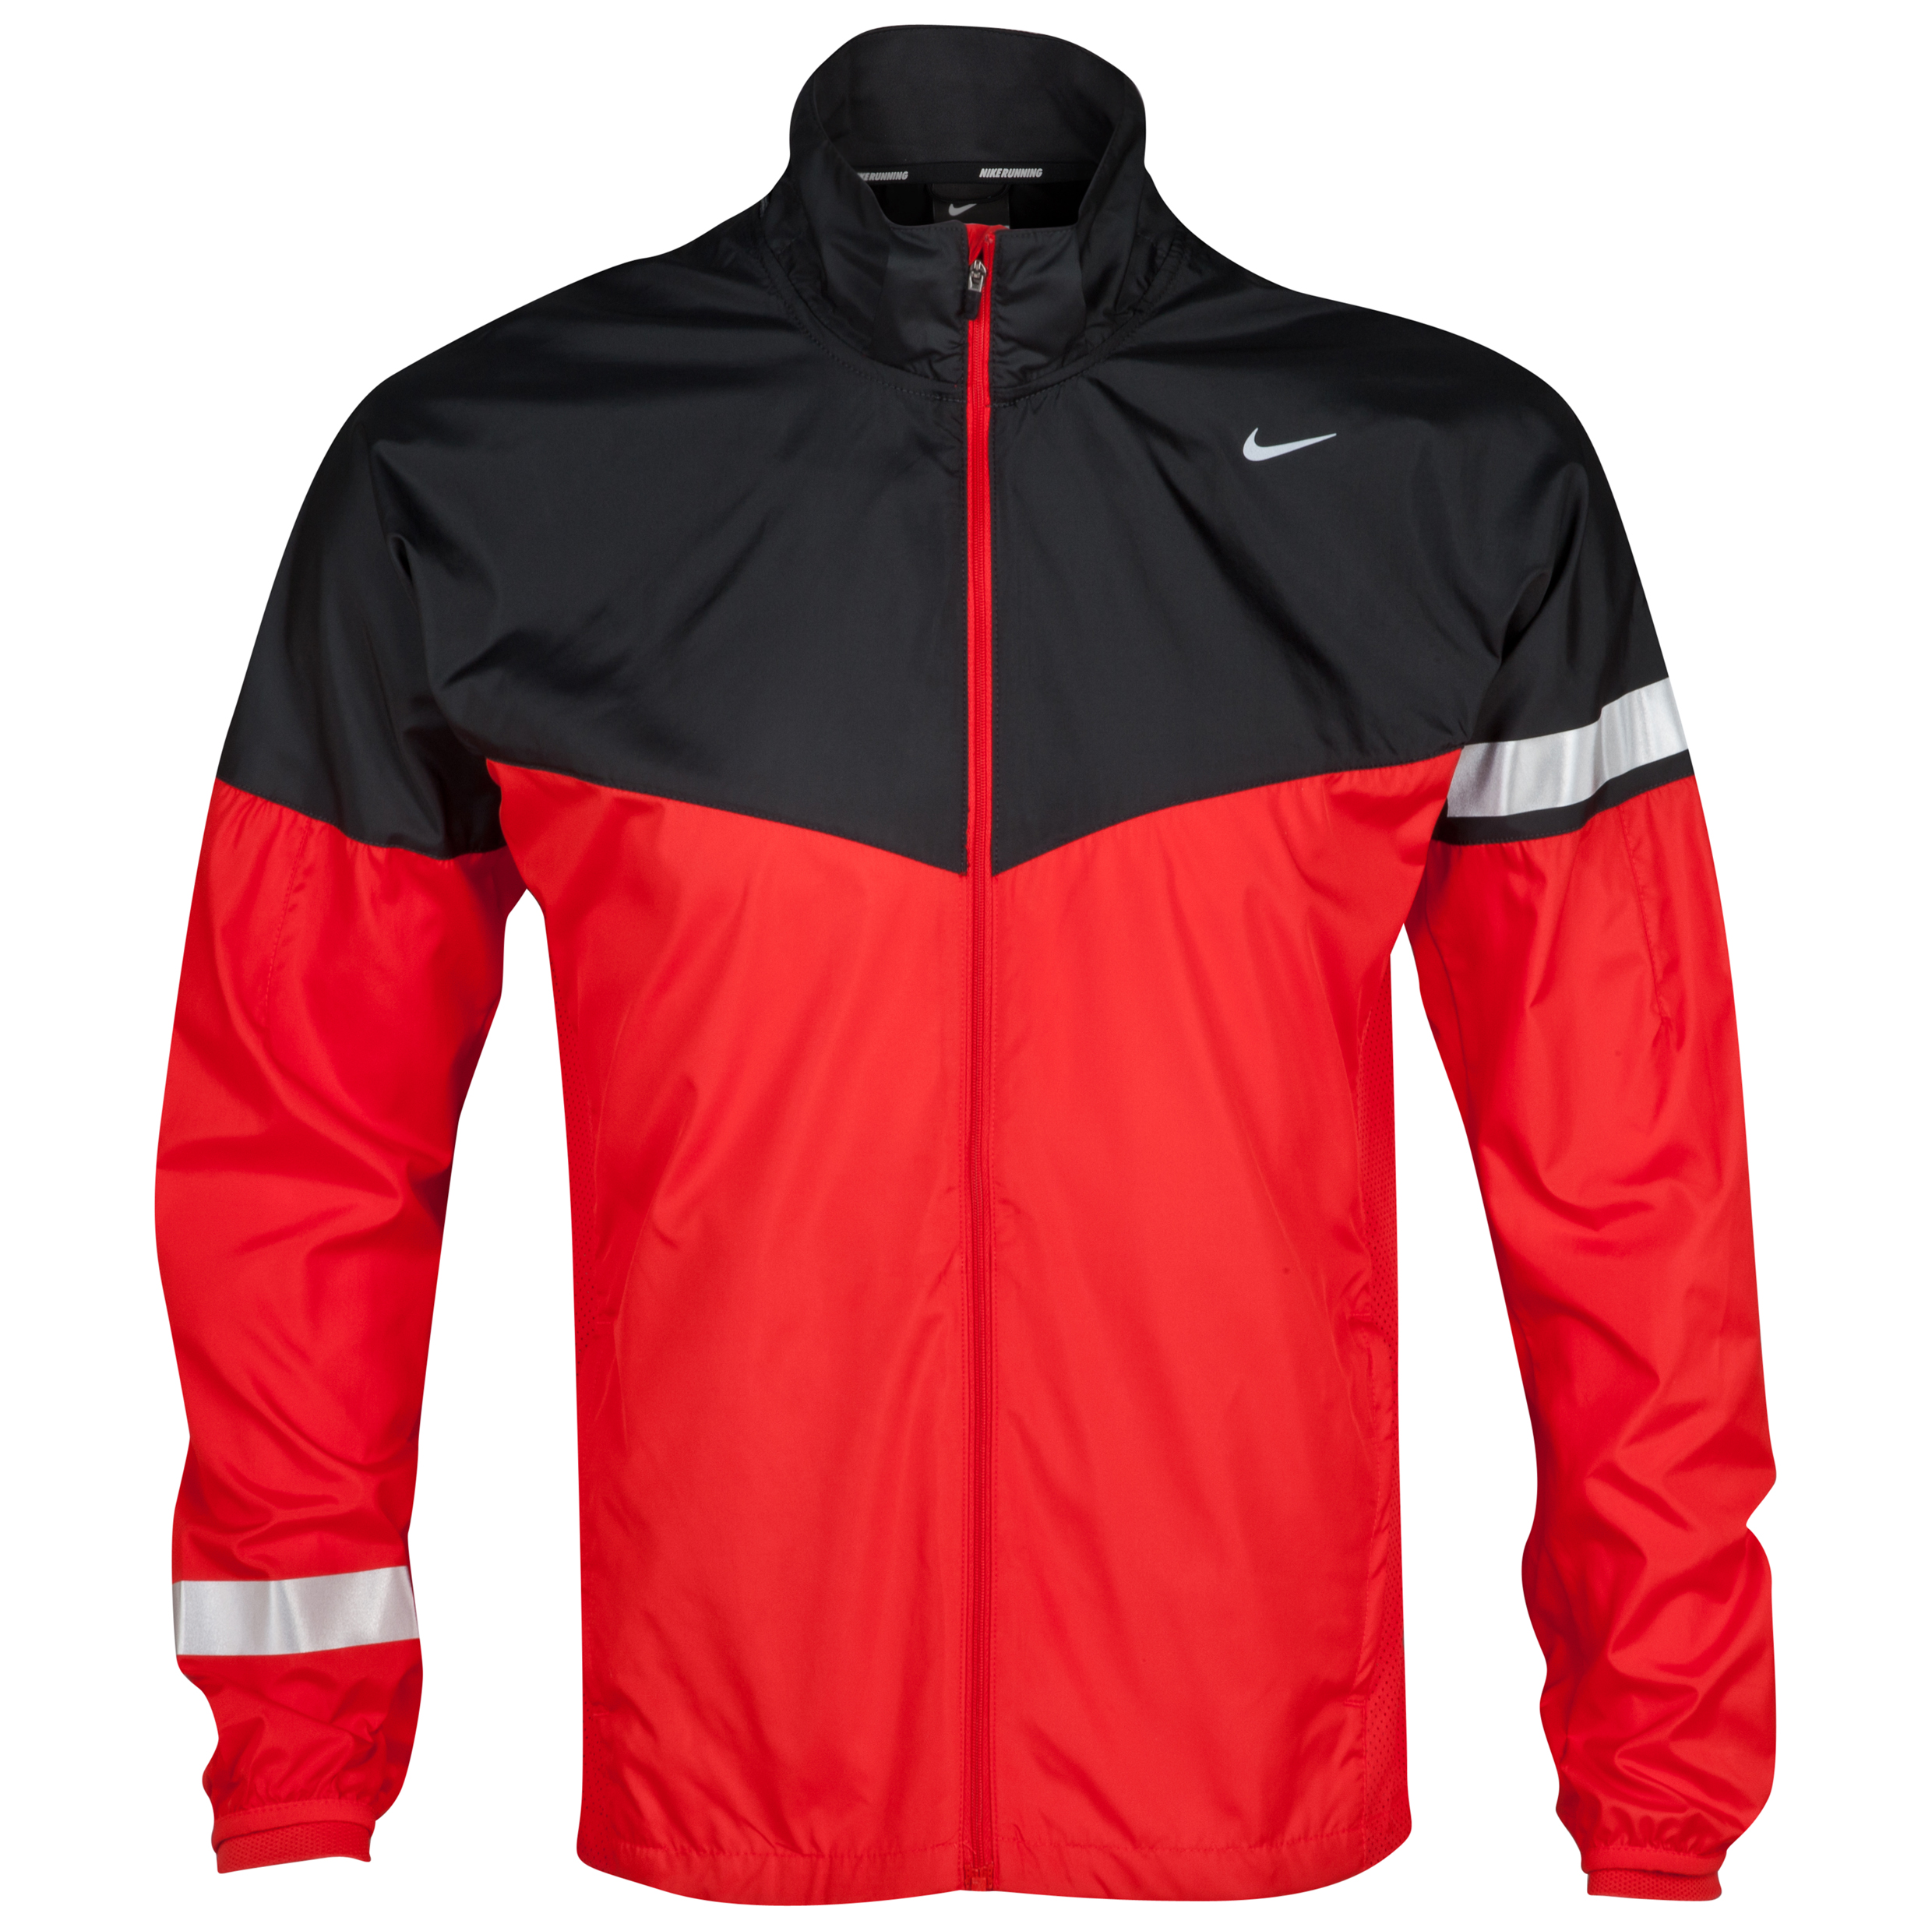 Nike Running Vapor Jacket - Pimento Red/Anthracite